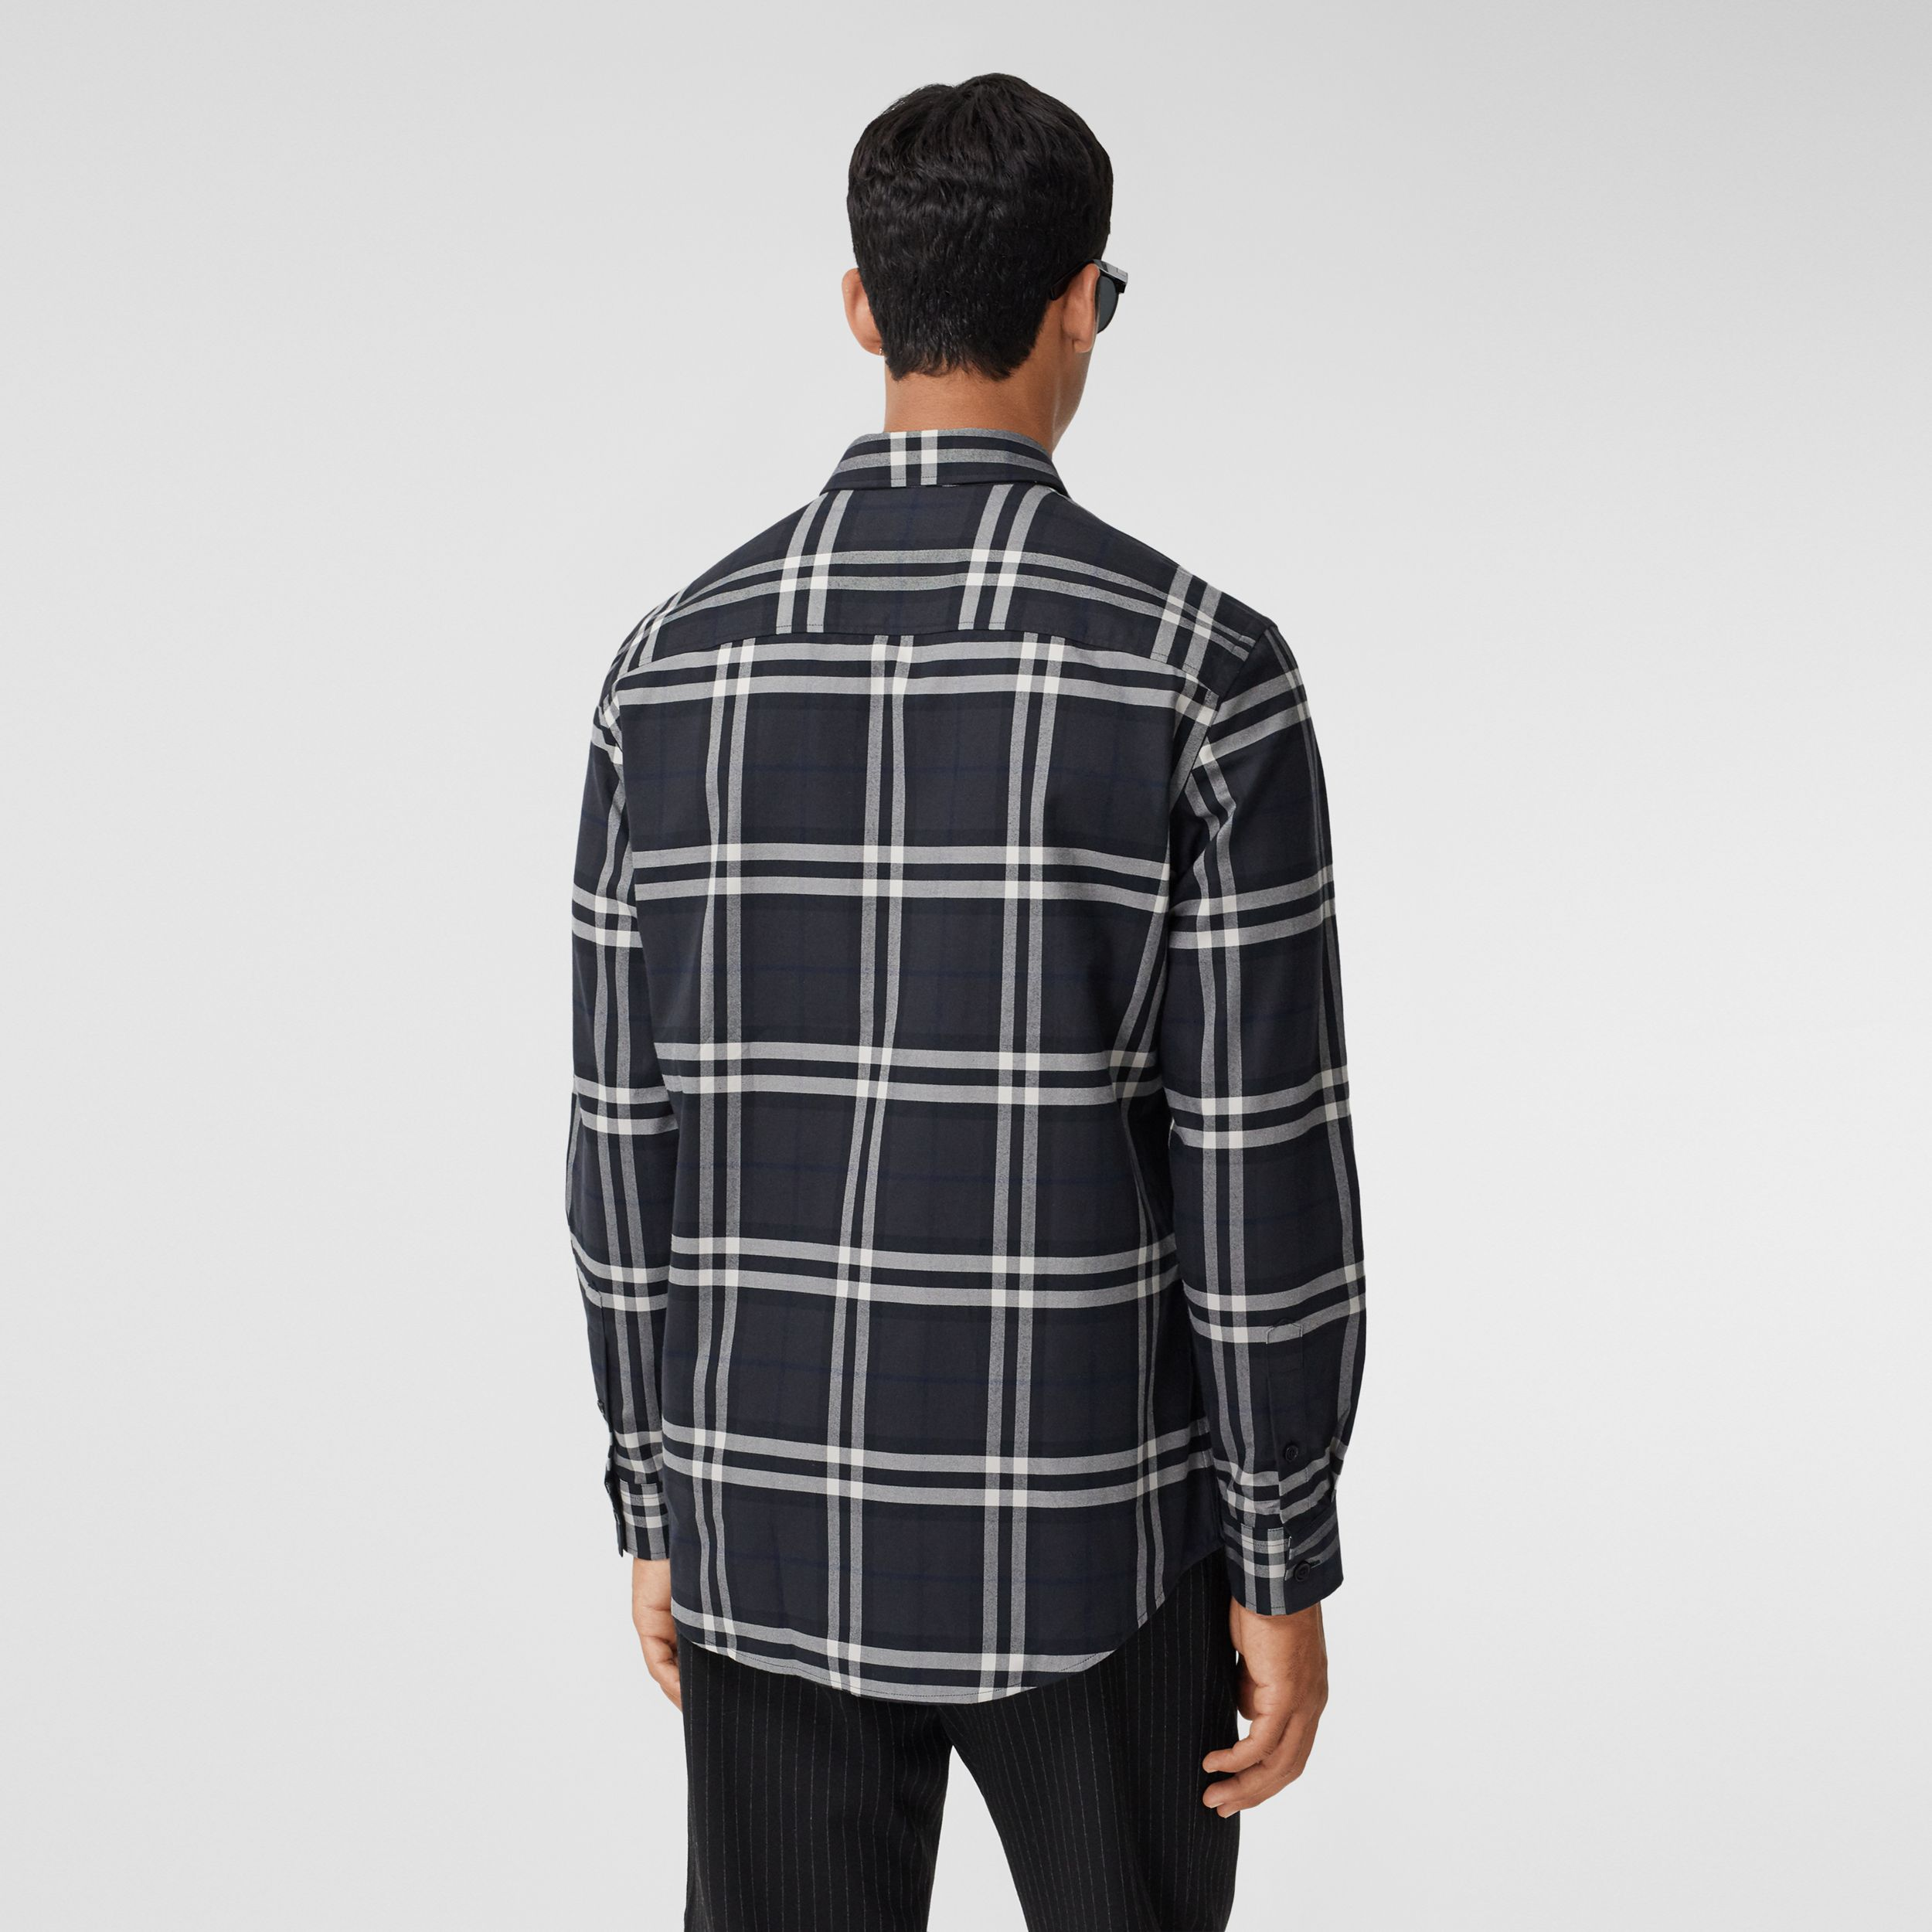 Vintage Check Cotton Flannel Shirt in Charcoal - Men | Burberry - 3